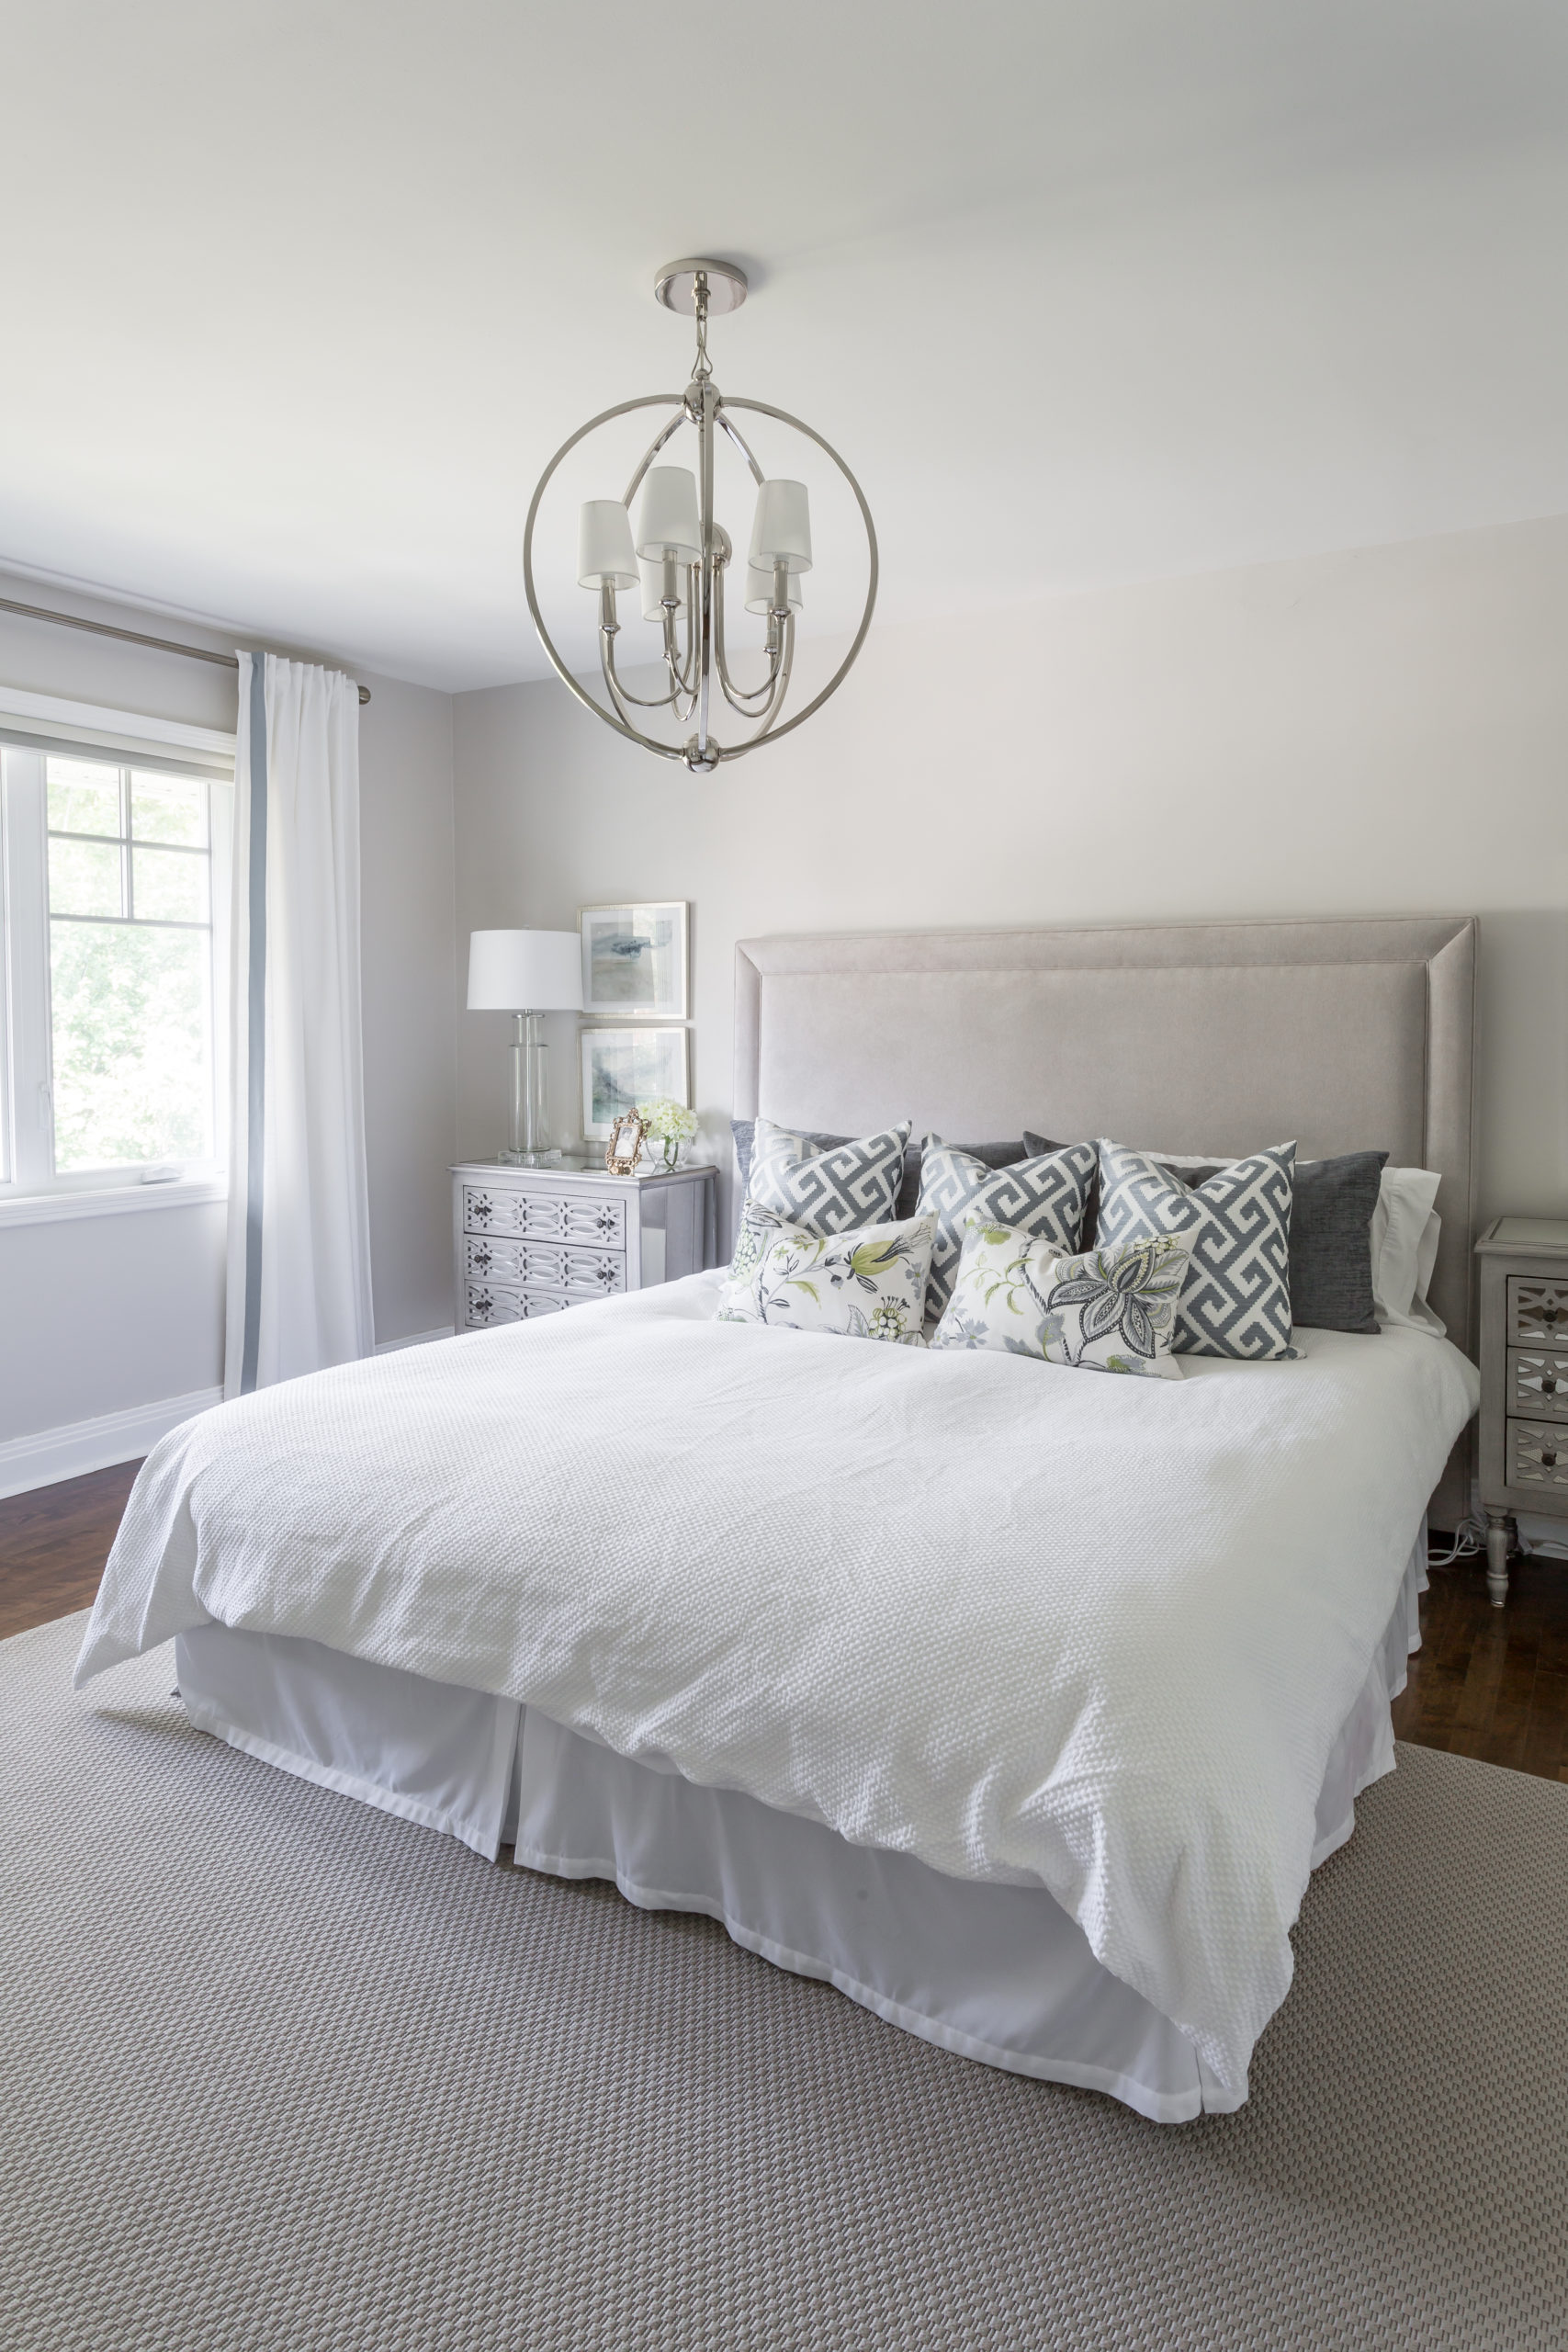 Large, white bed within a master bedroom